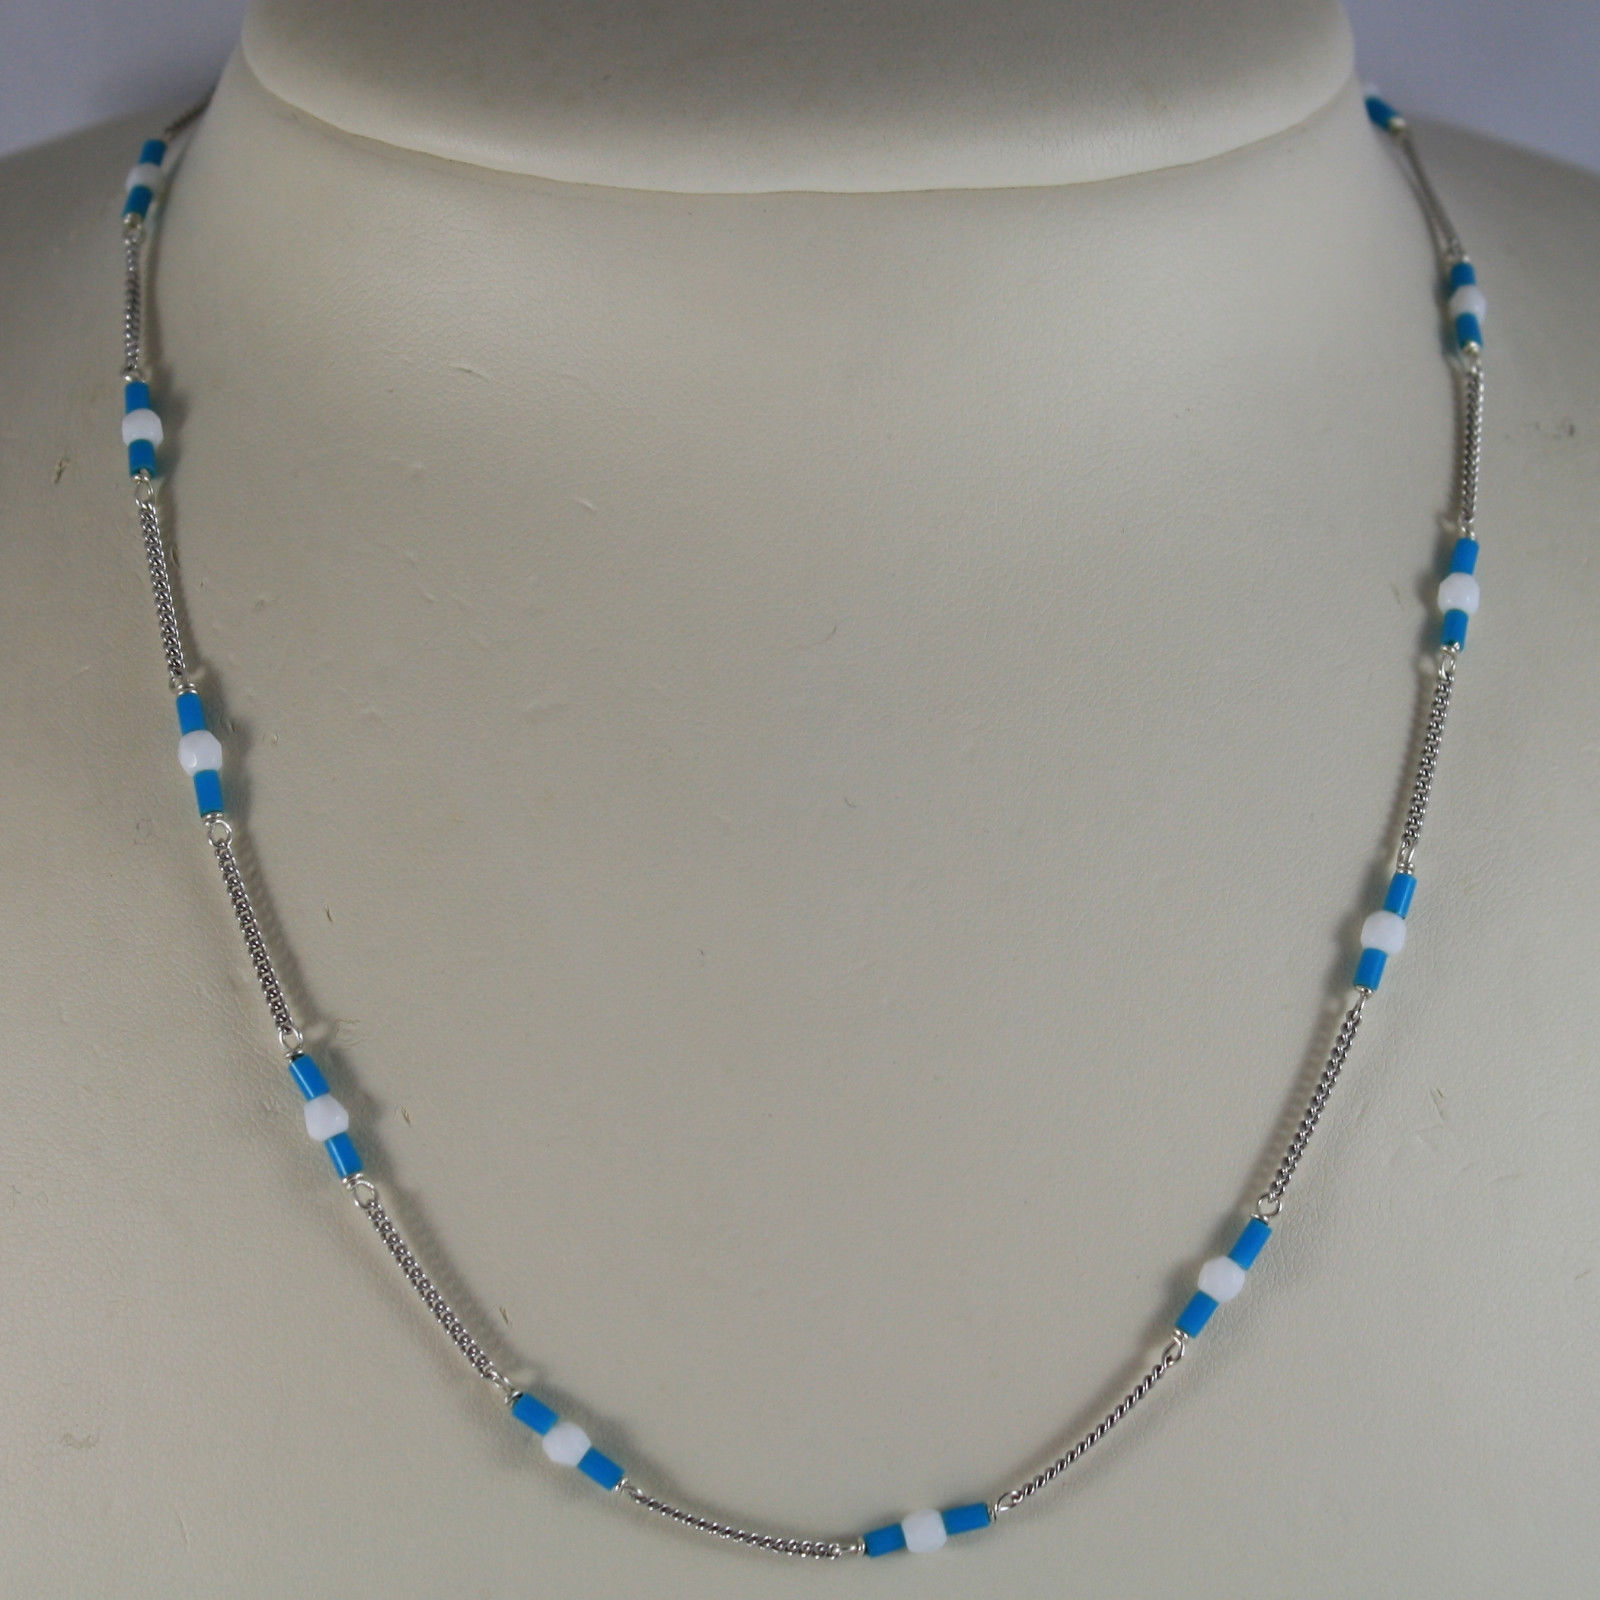 .925 RHODIUM SILVER NECKLACE WITH TUBE OF TURQUOISE AND WHITE AGATE